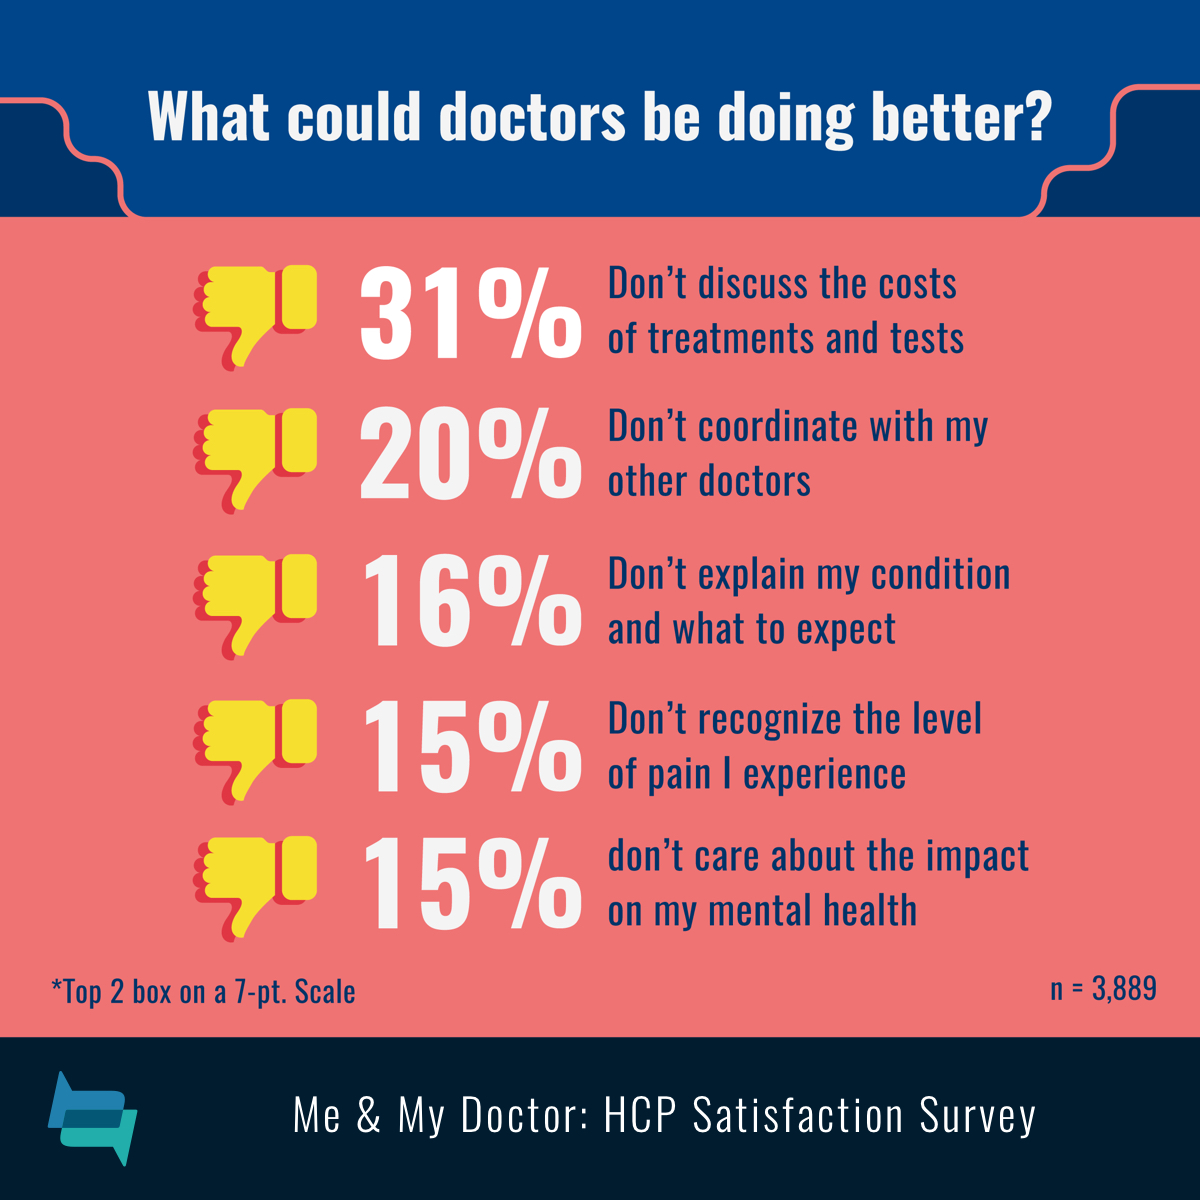 Doctors don't explain cost (31%) and expectations (16%), don't coordinate with other doctors (20%), don't see pain (15%), neglect mental health.